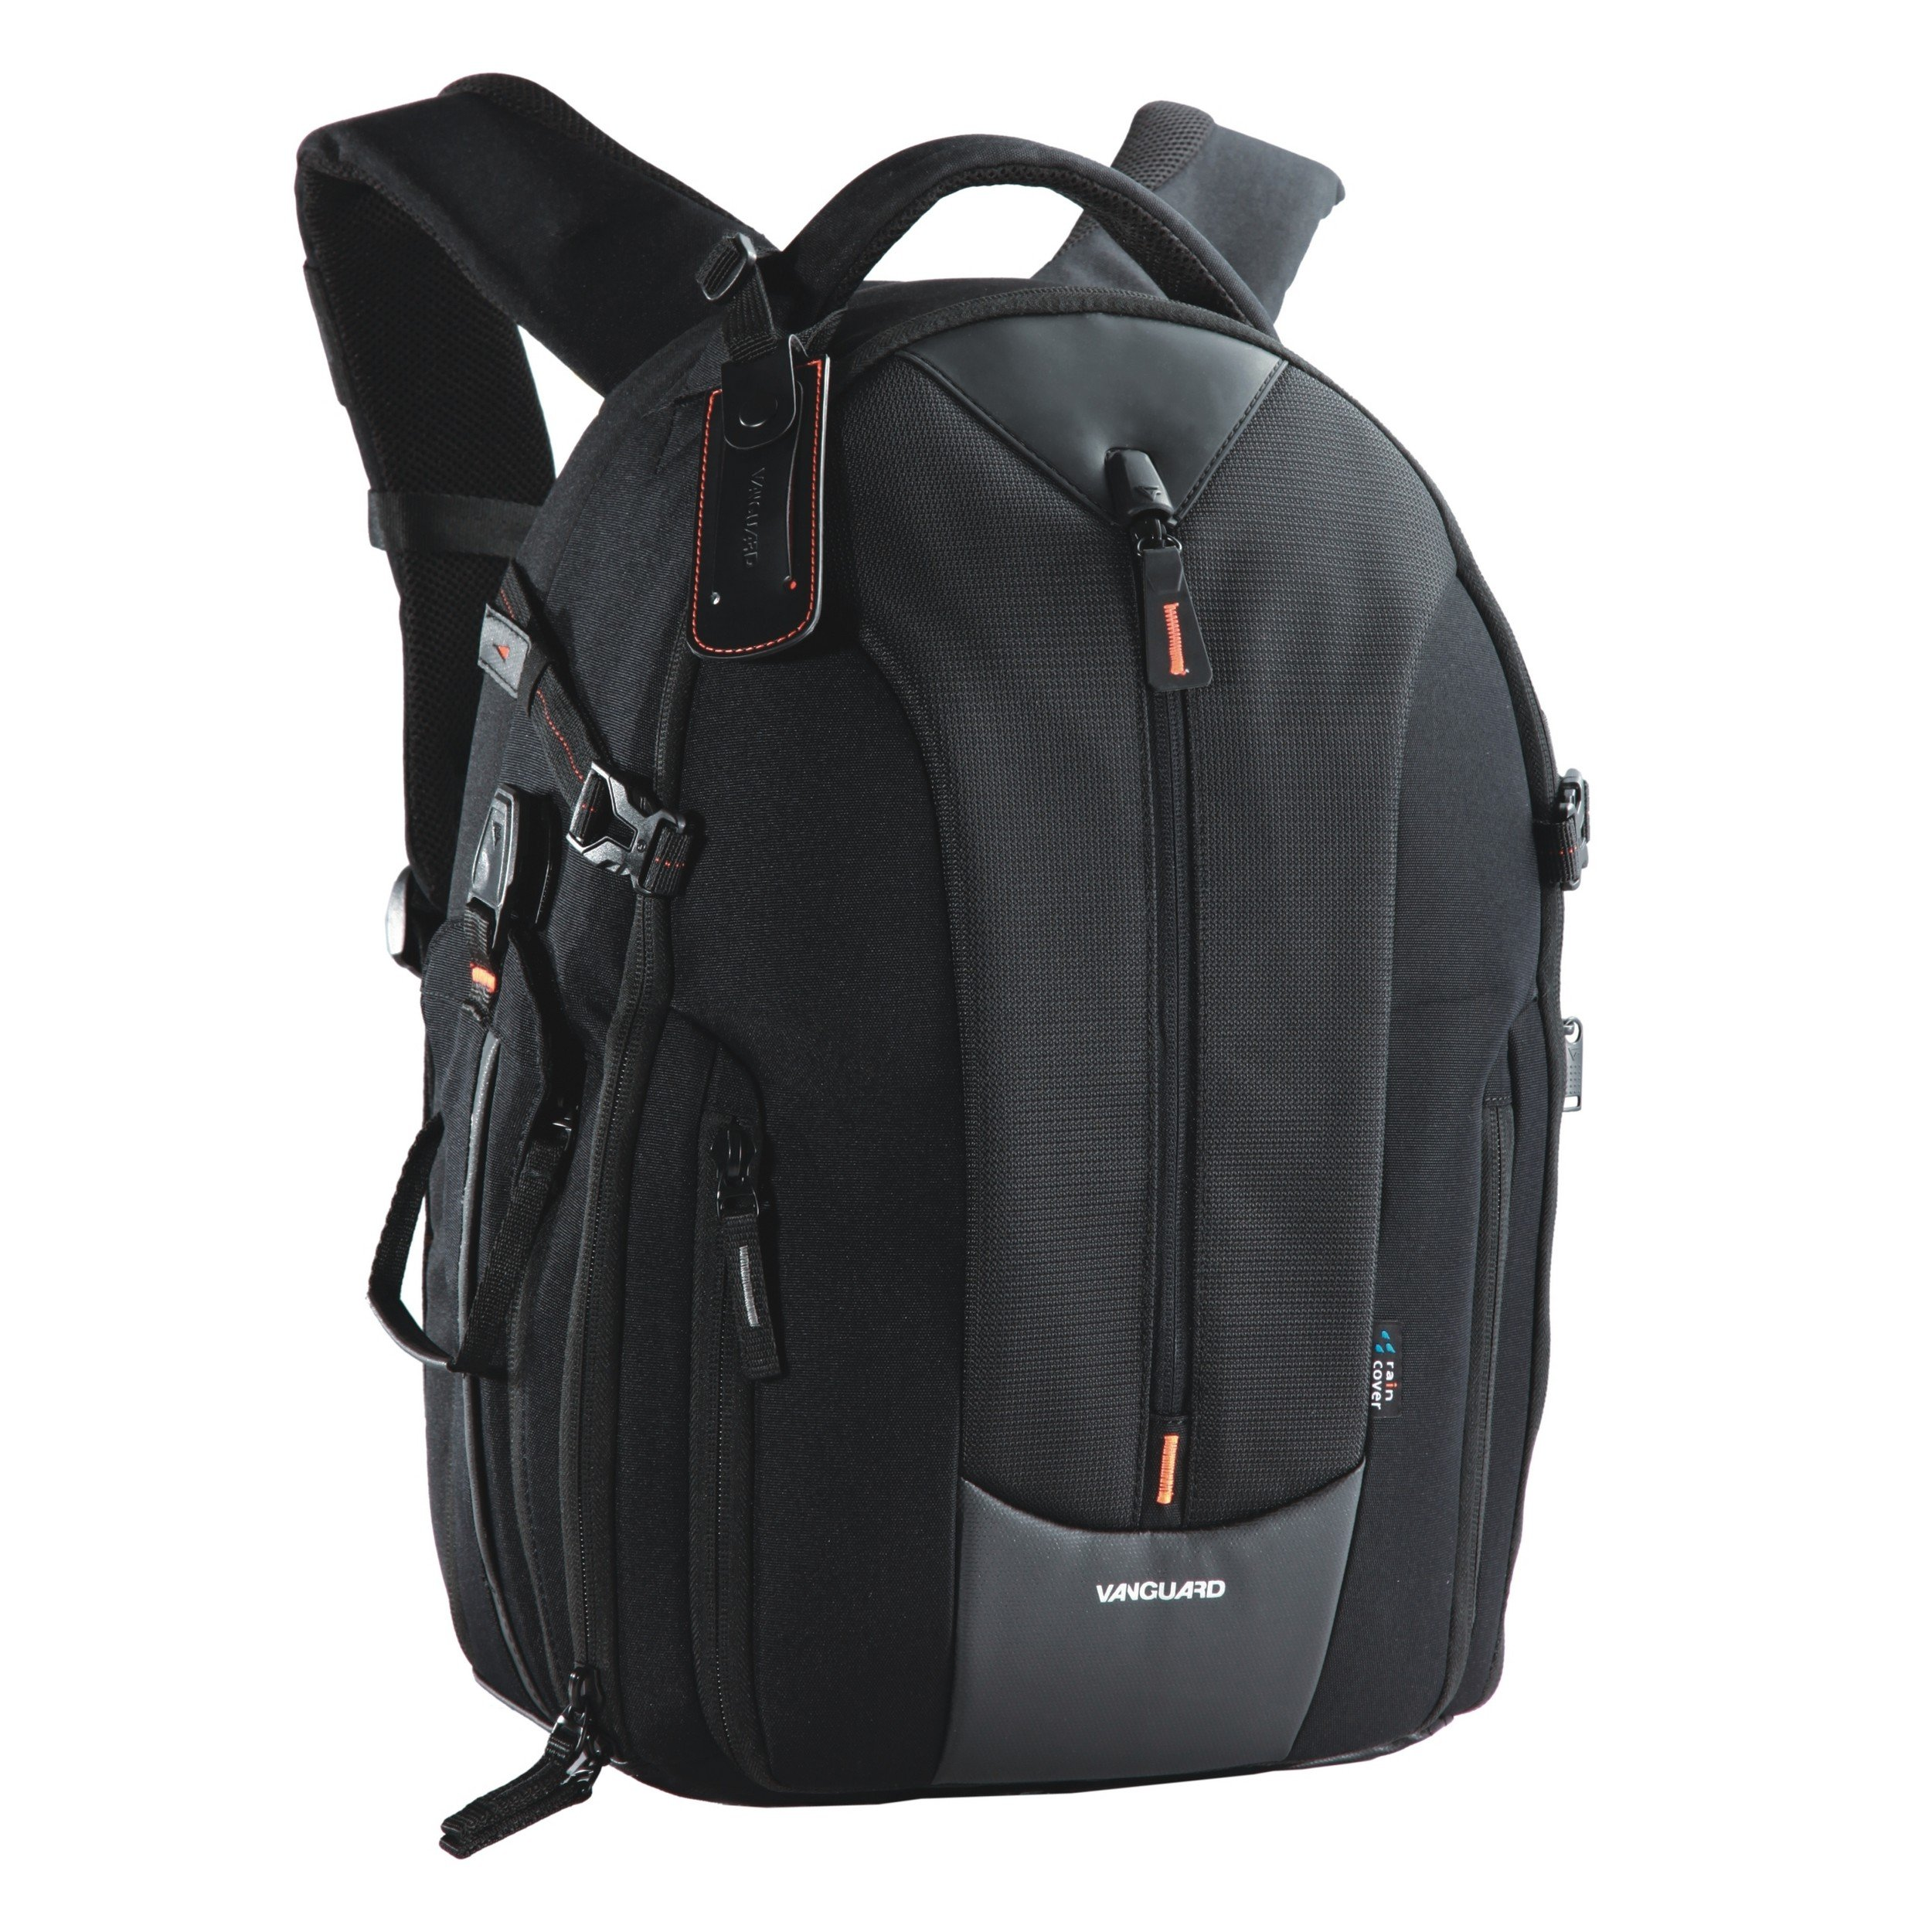 Vanguard Up-Rise II 46 Backpack for Camera Gear and Accessories (Black) by Vanguard